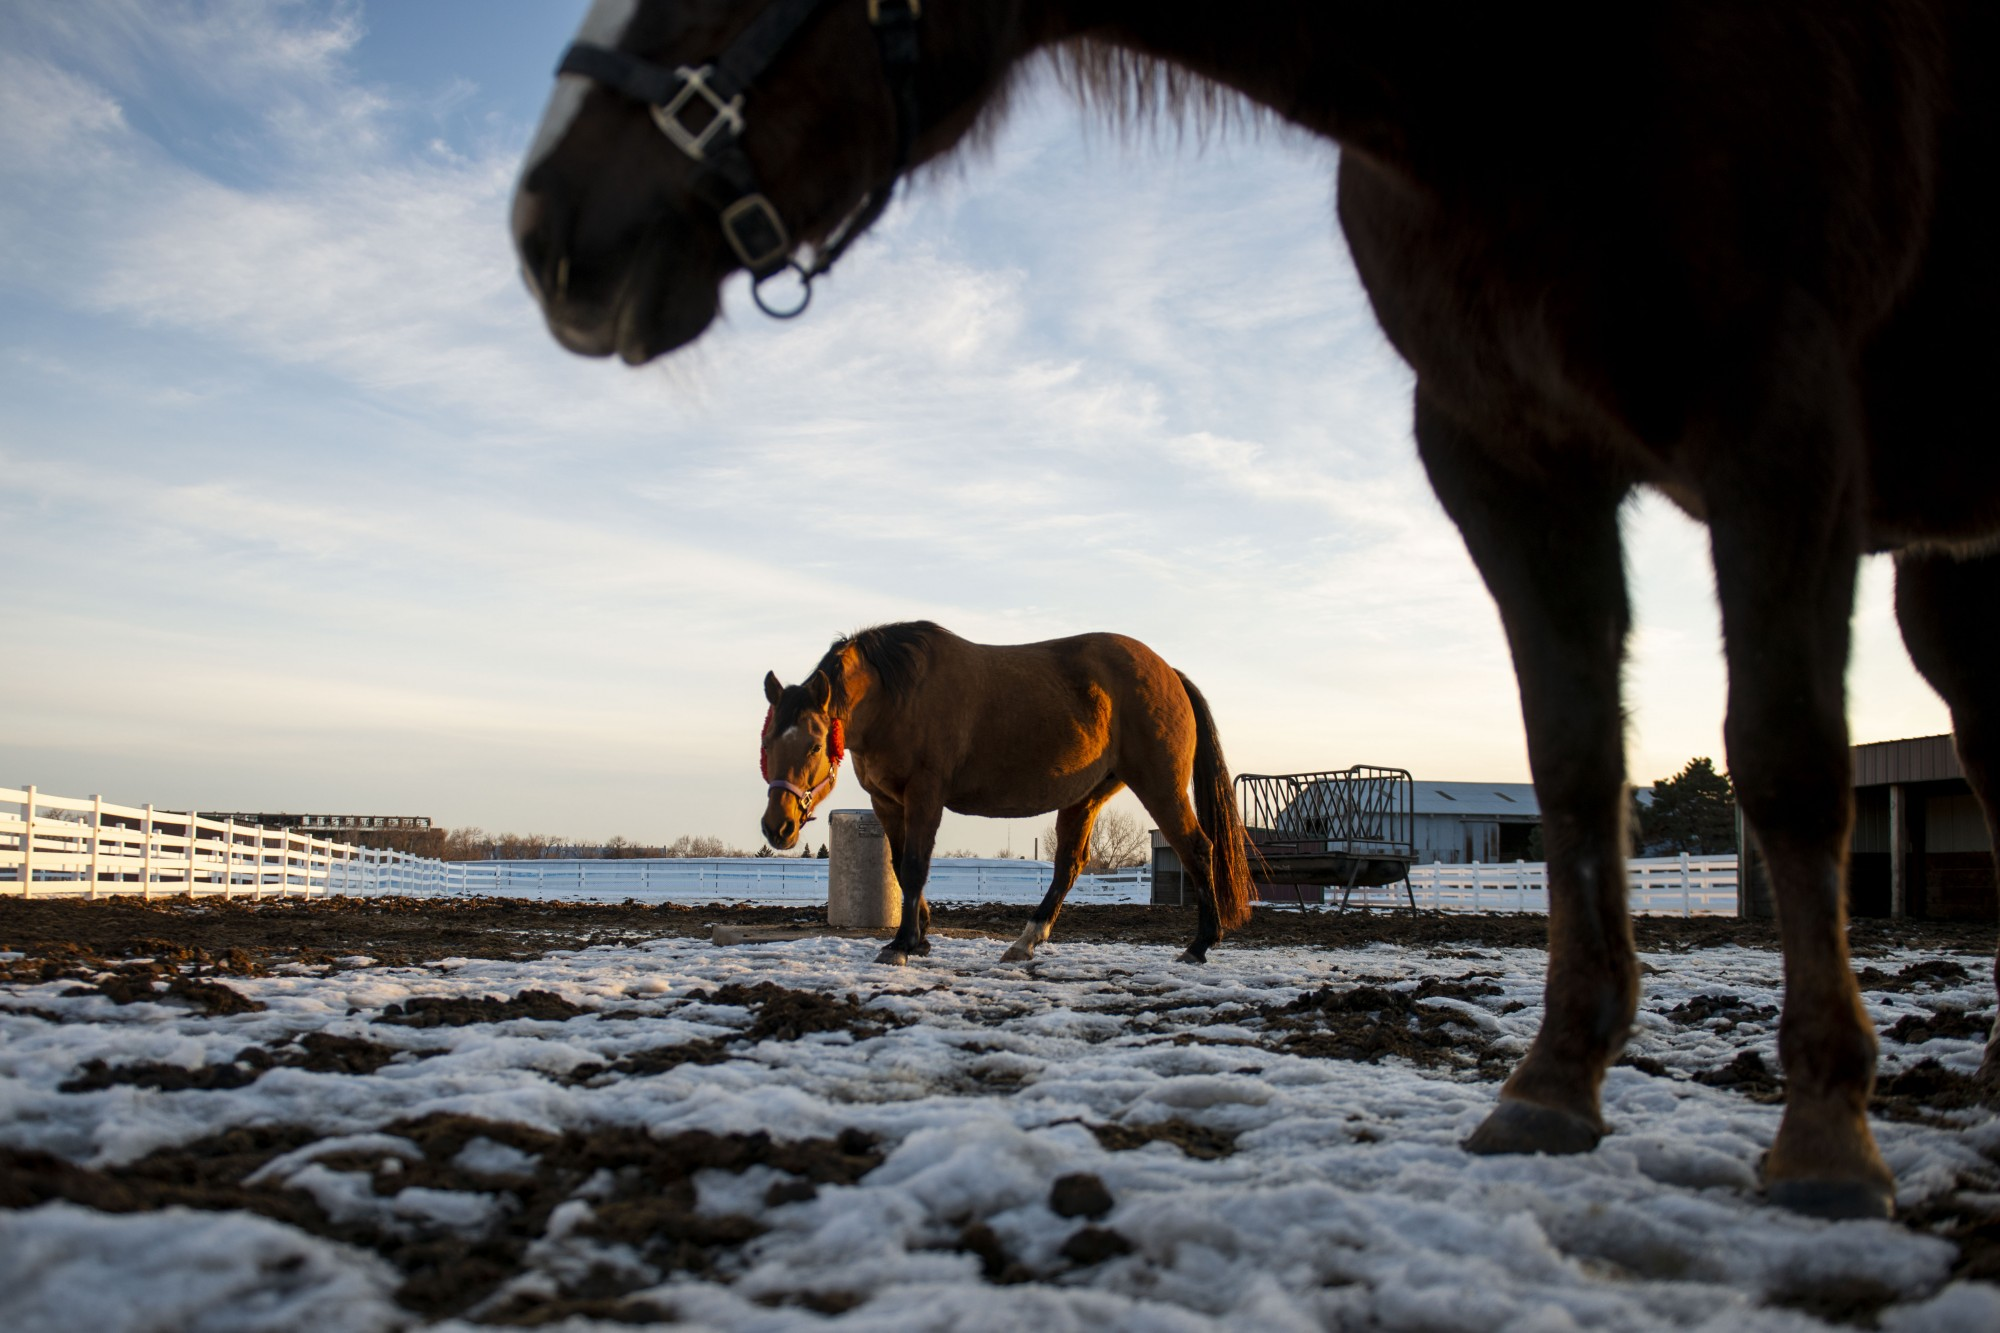 Horses walk about their enclosure at the Leatherdale Equine Center near the St. Paul campus on Monday, Feb. 24.